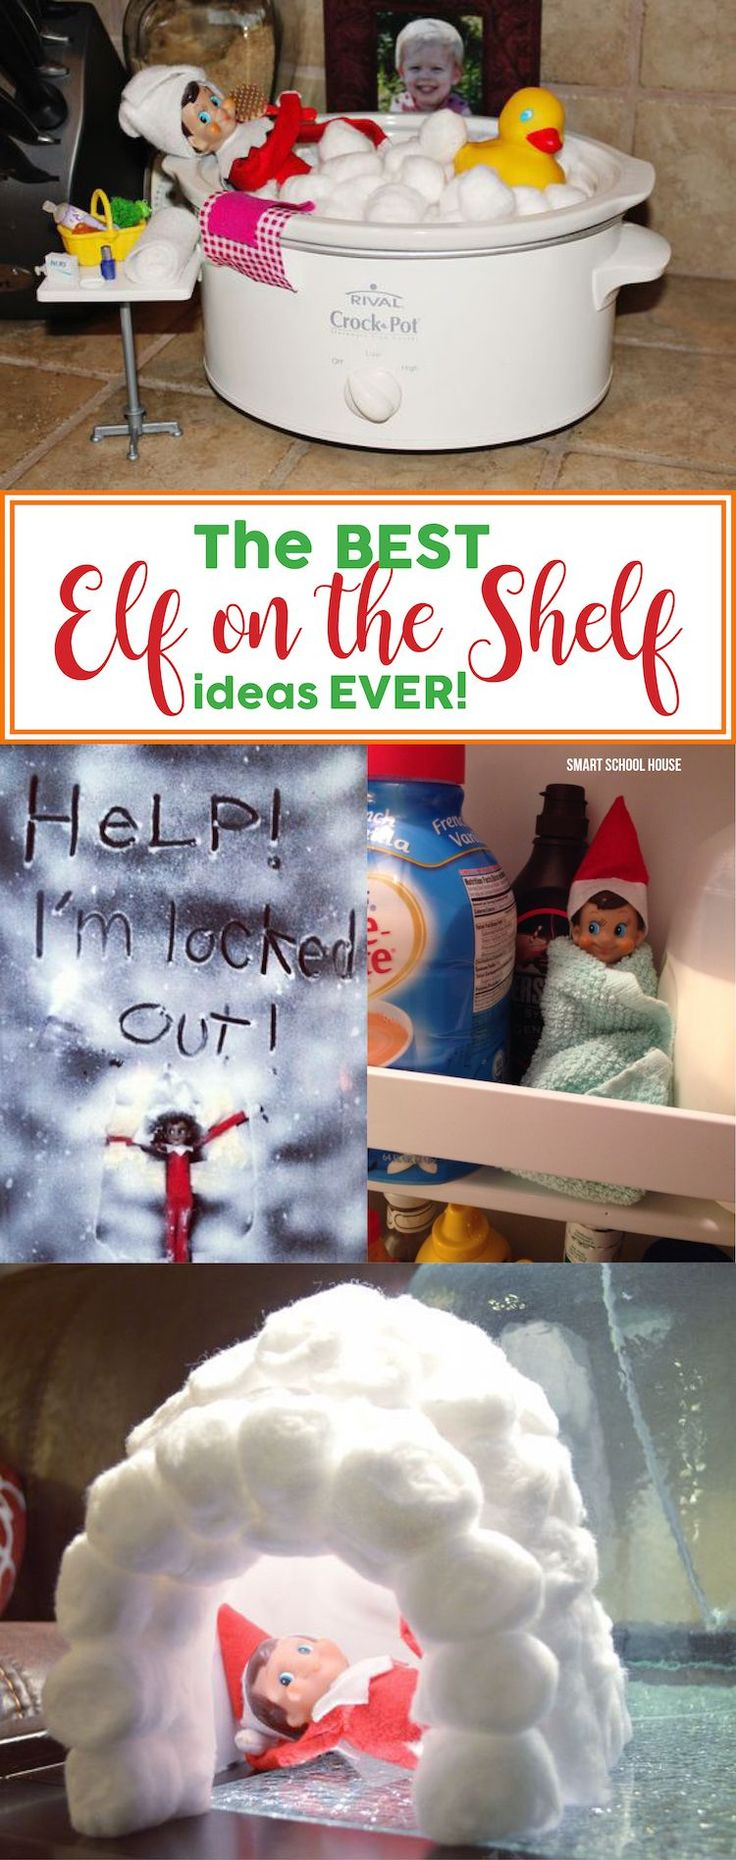 The BEST Elf on the Shelf ideas EVER!! Don't worry about frantically figuring out what to do with the elf tonight. Check out these easy and smart Elf on the Shelf ideas instead.